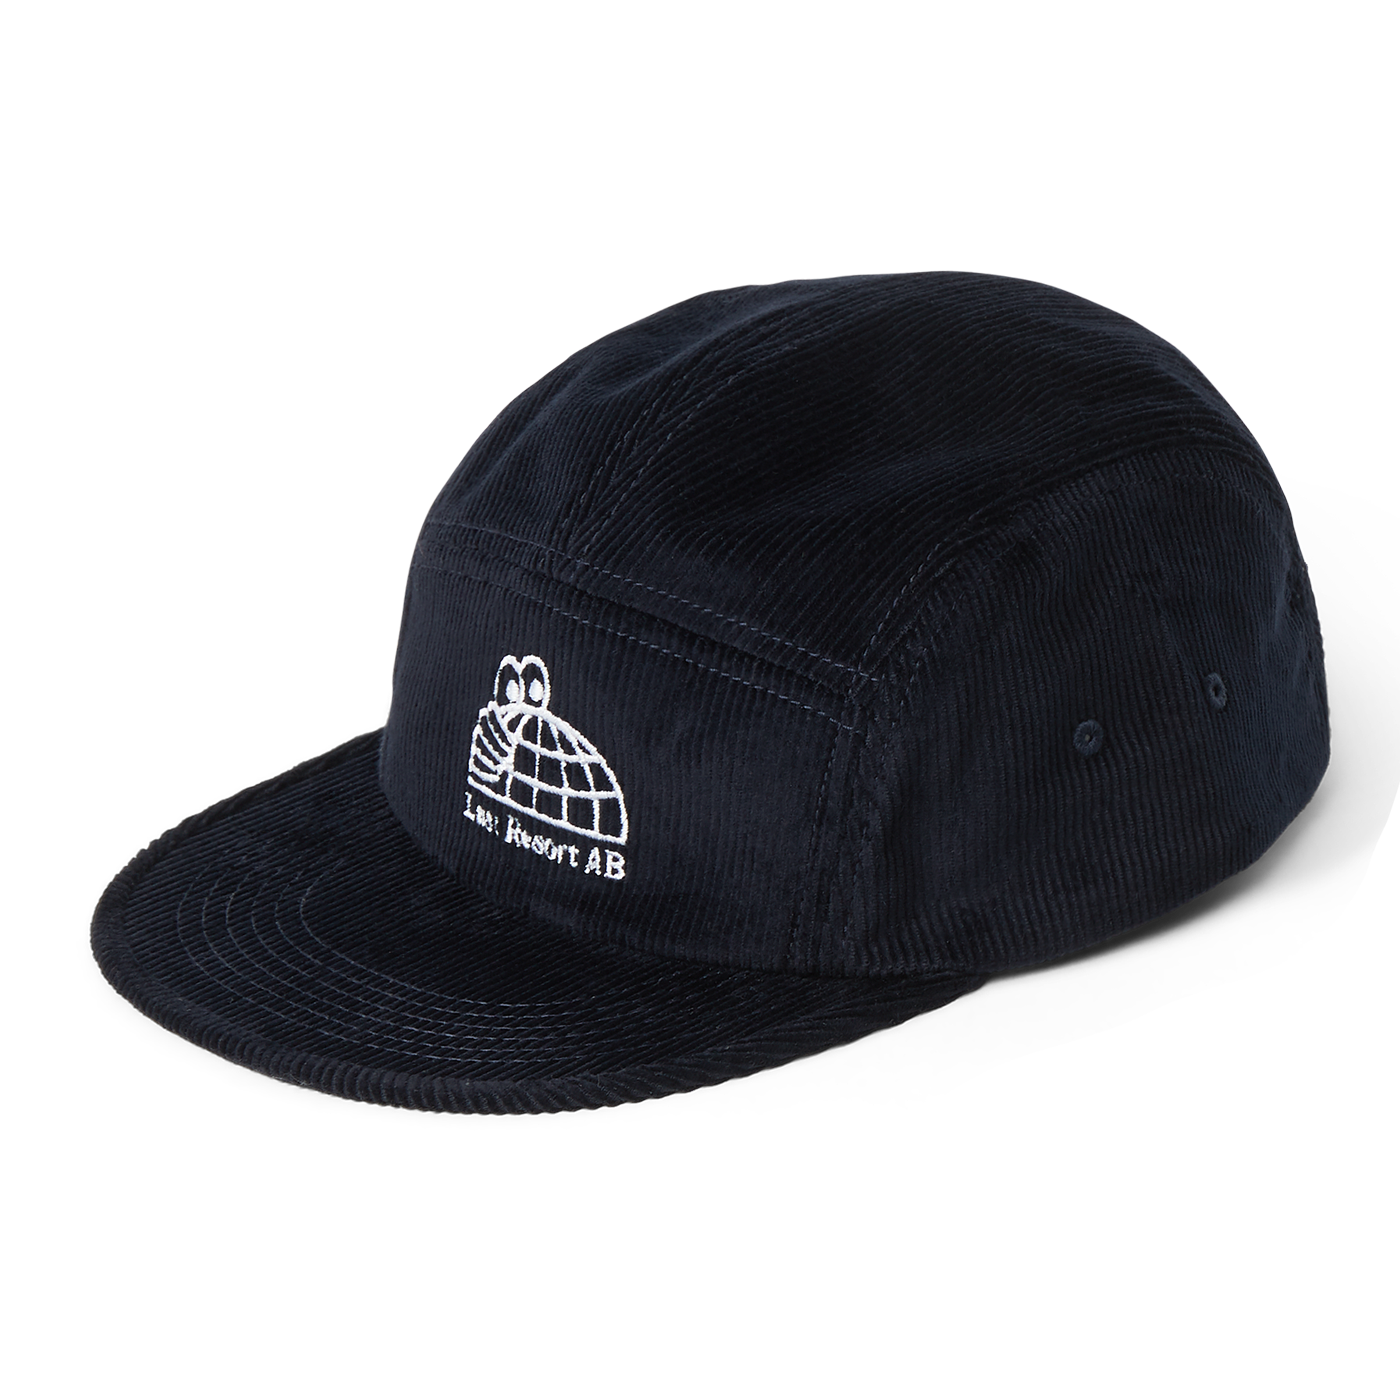 Last Resort AB Half Globe Cord 5-Panel Black